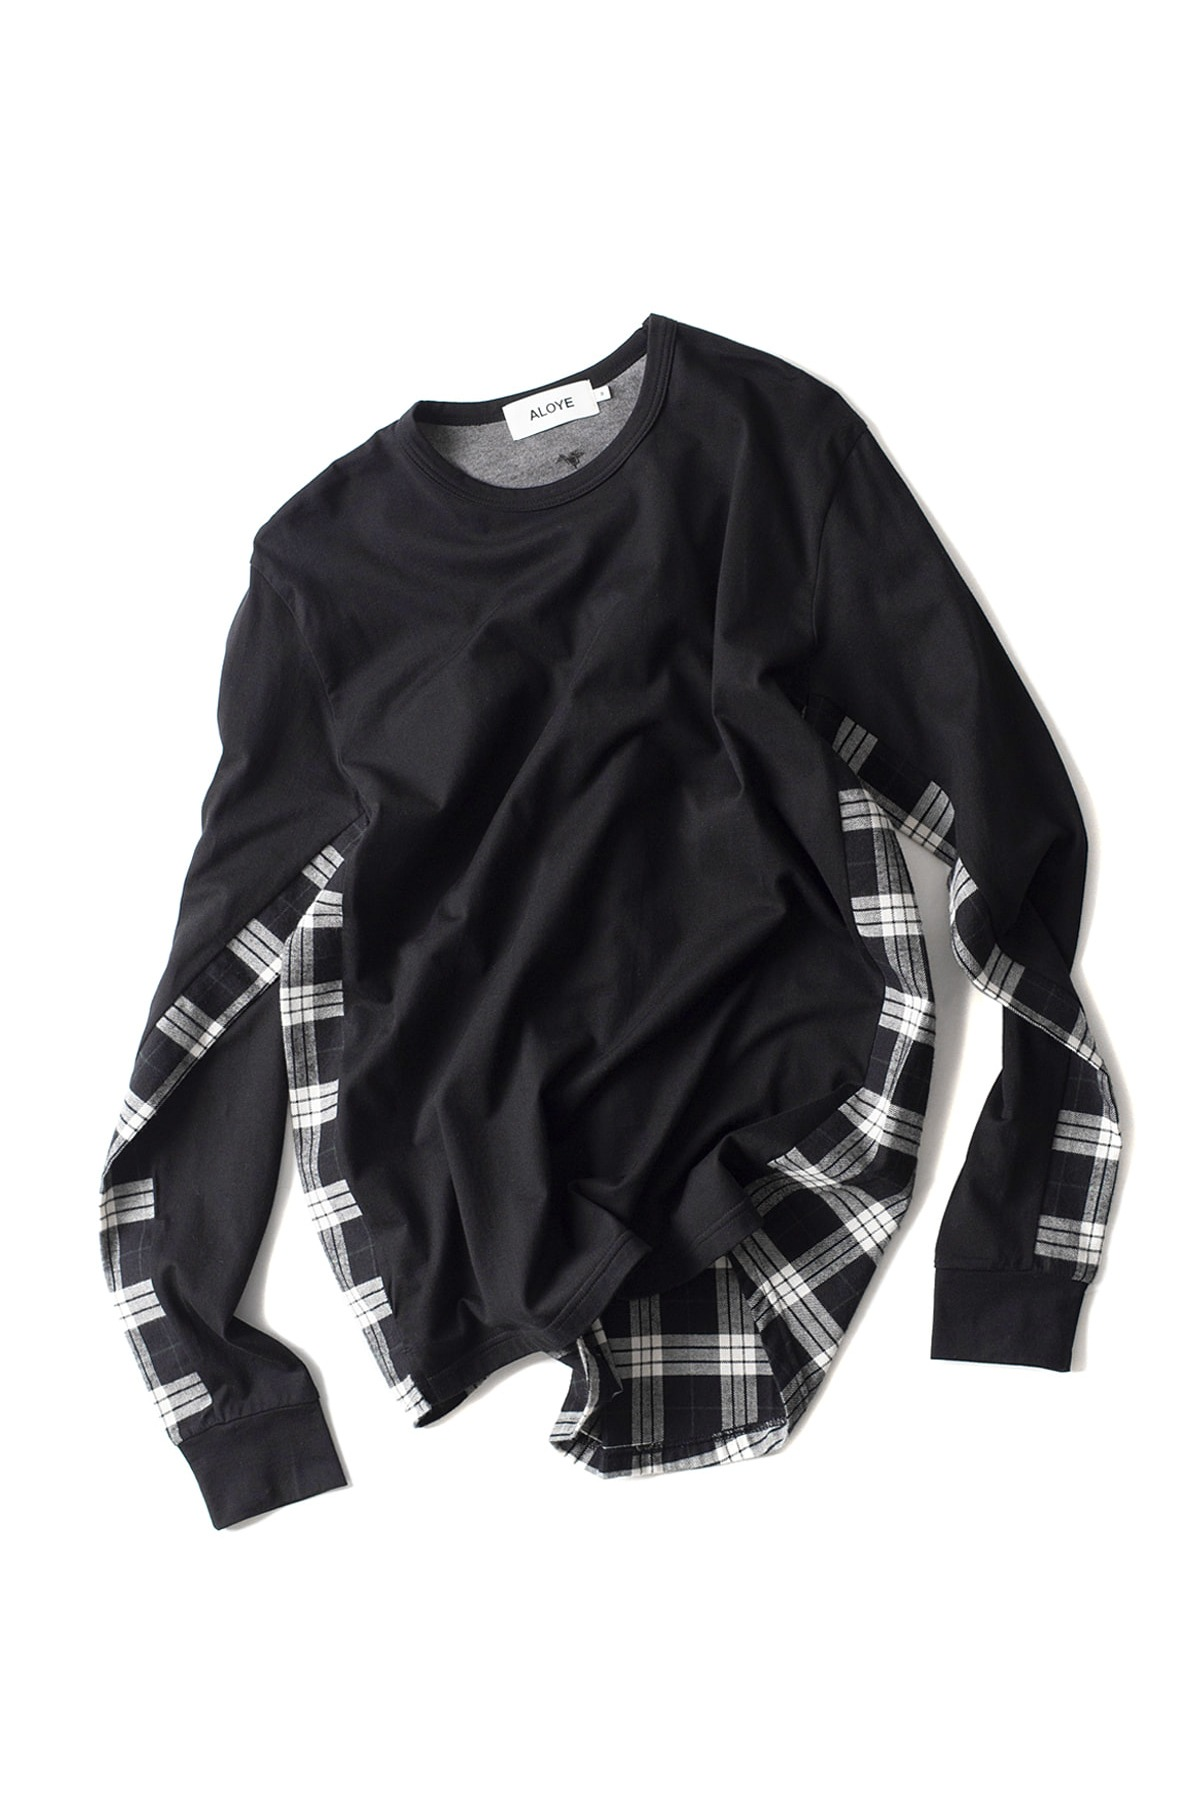 ALOYE : Shirt Fabrics Long Sleeve T-Shirt (Black)